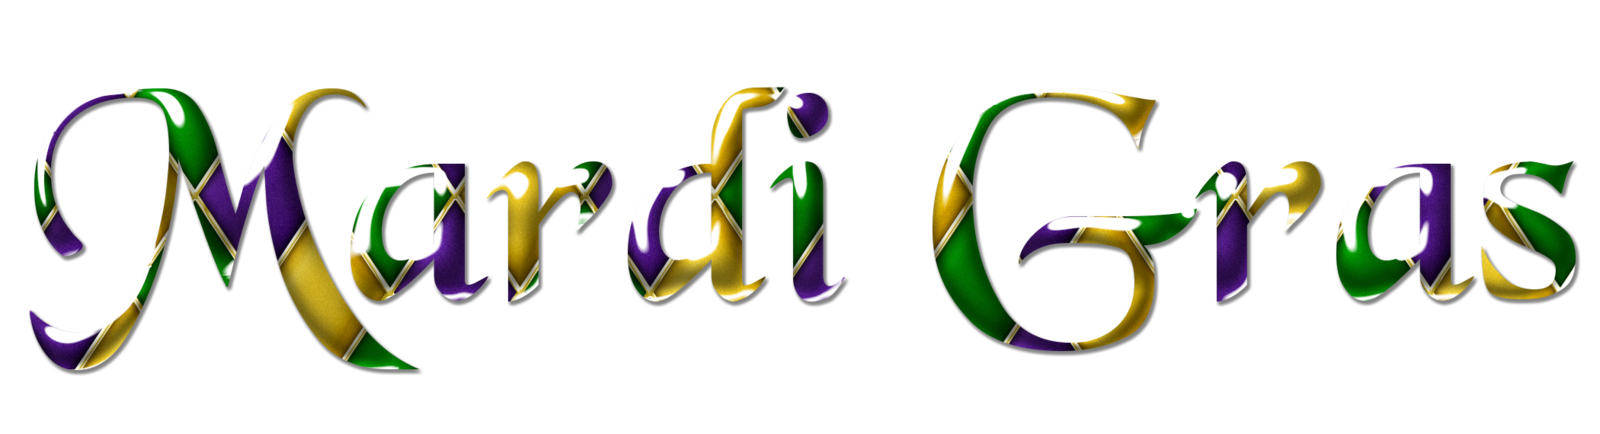 1600x434 Graphics For Mardi Gras Png File Graphics